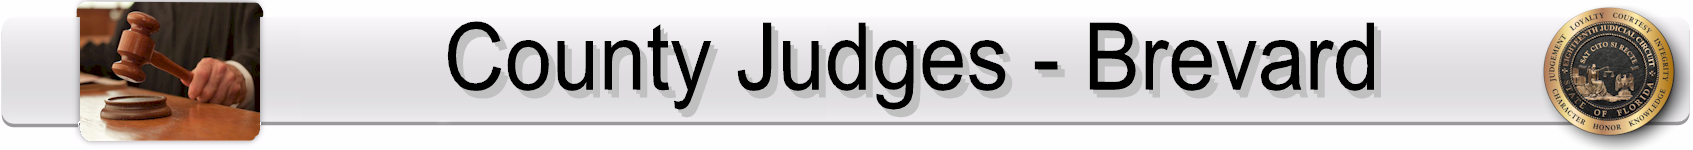 Brevard County Judges